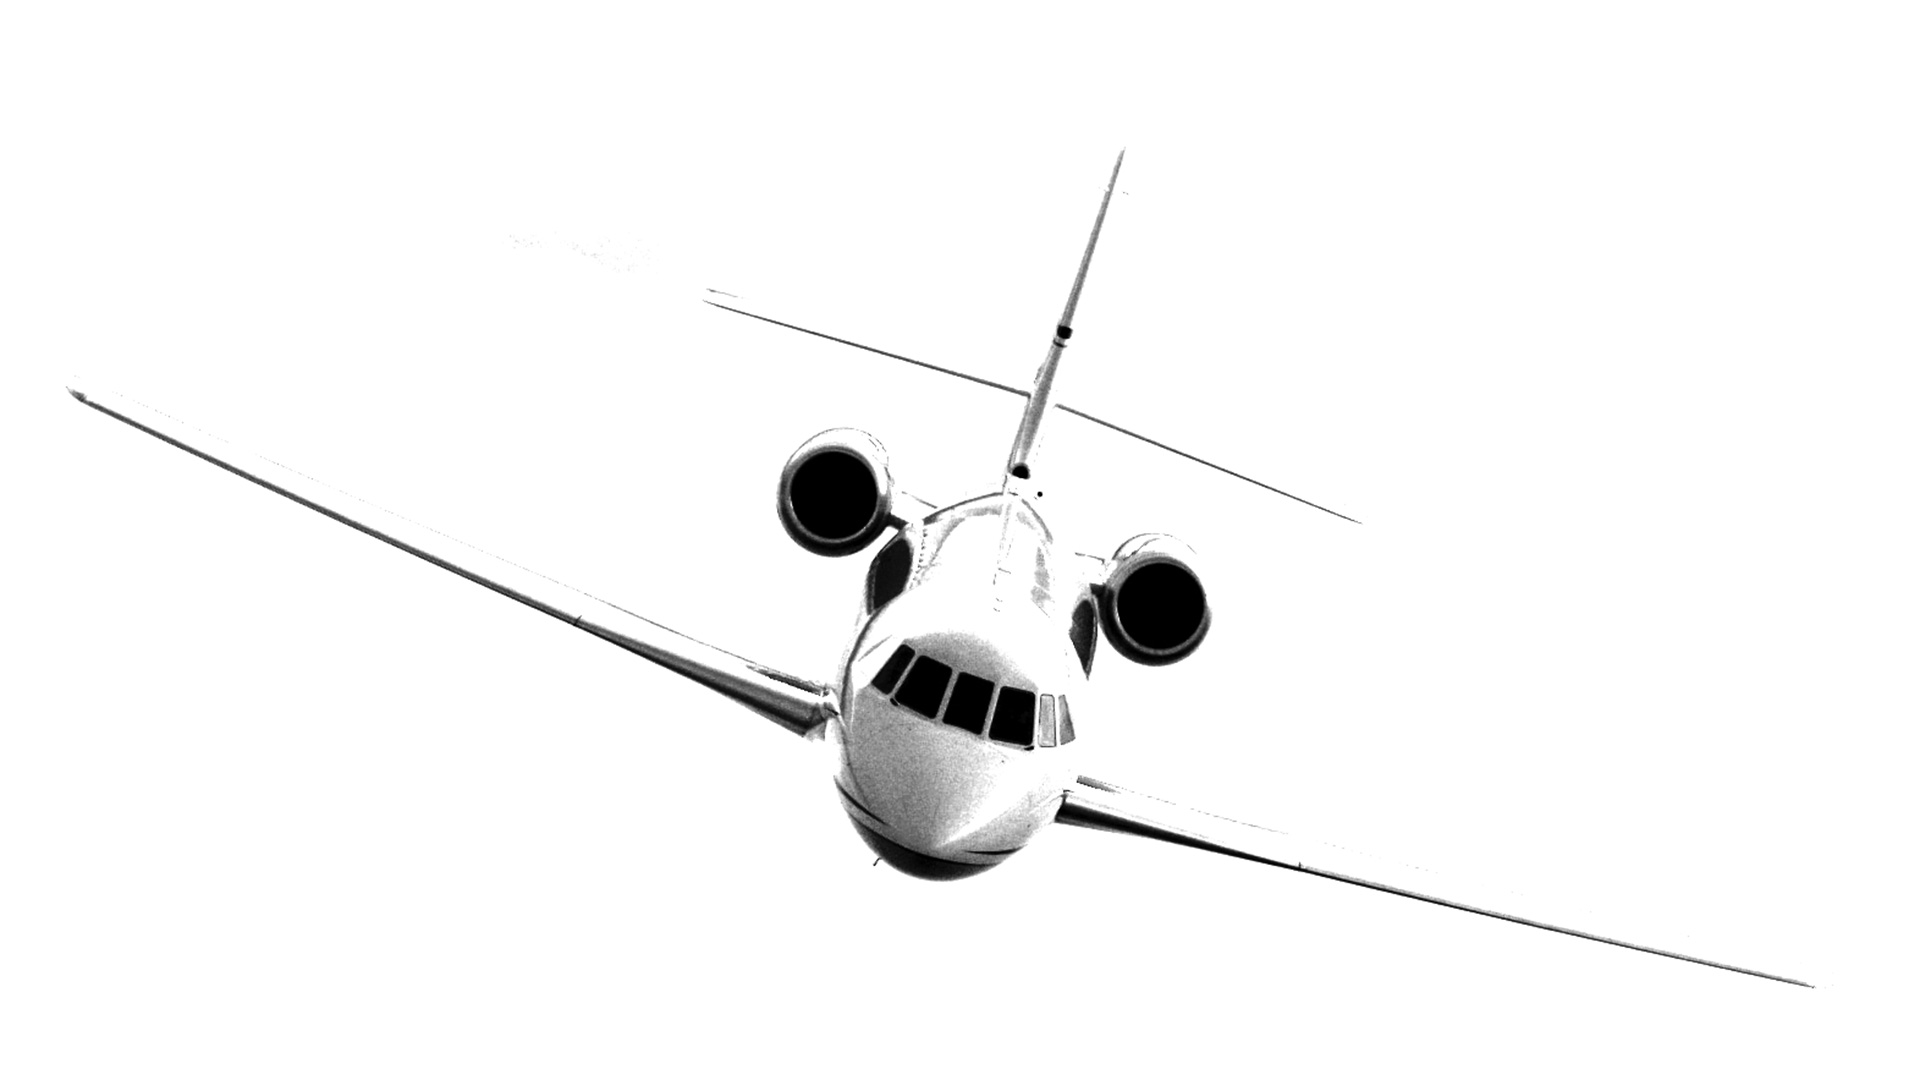 Pro Line 4™ to Pro Line 21™ Upgrade for Falcon 50-50EX and Falcon 2000-2000/EX